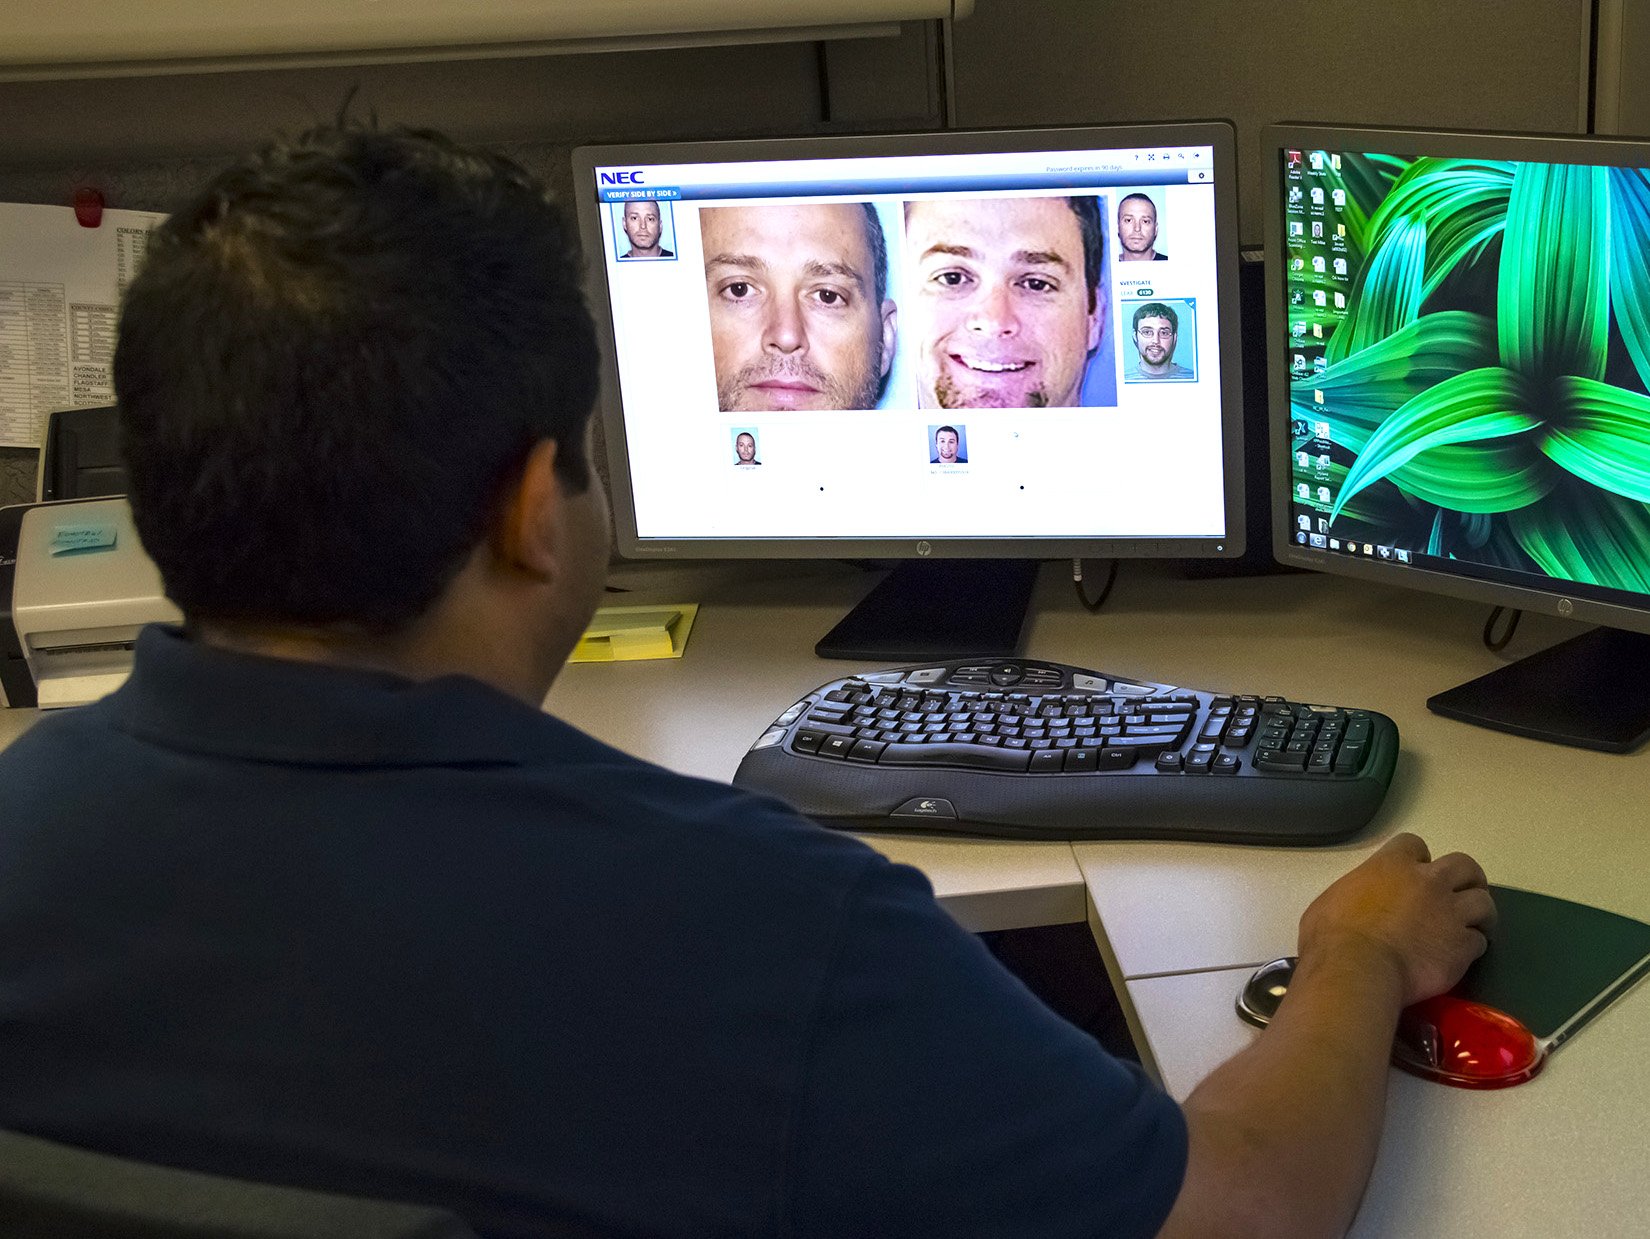 Two faces being compared side-by-side on a computer